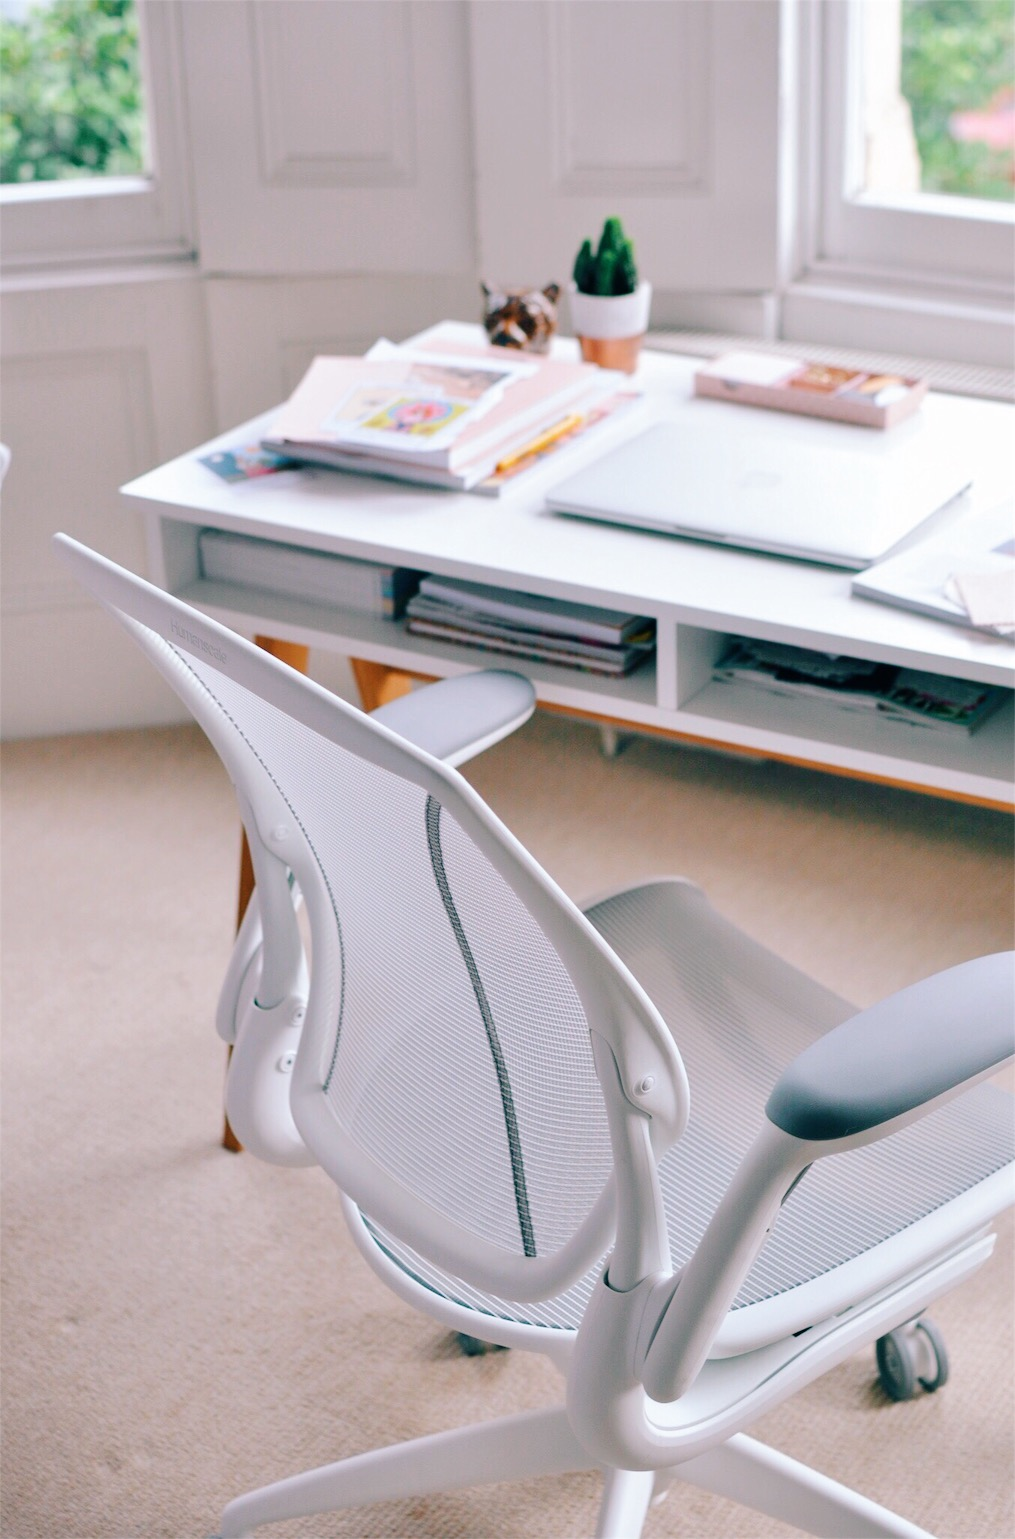 home office ideas, office design, office decor ideas, working from home, back to work after a baby, office interior, small office desk, best office chair, computer chair, white office chair white desk chair, working with a baby